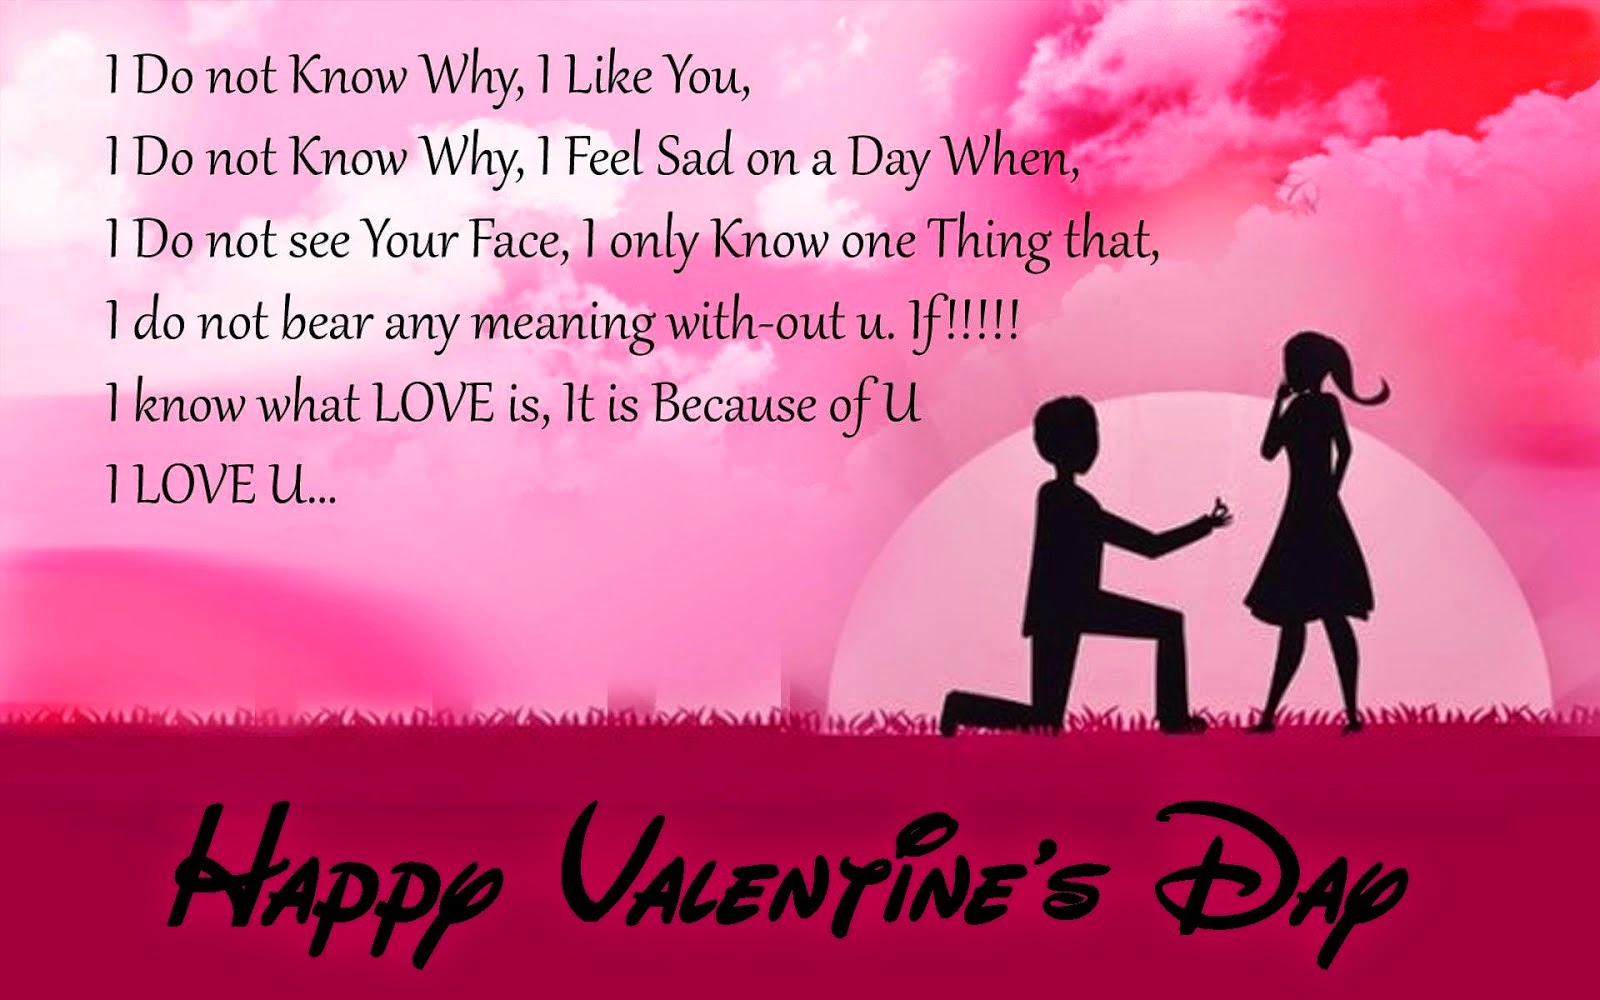 Happy valentines day messages greetings wishes upcomevent happy valentines day greetings m4hsunfo Choice Image